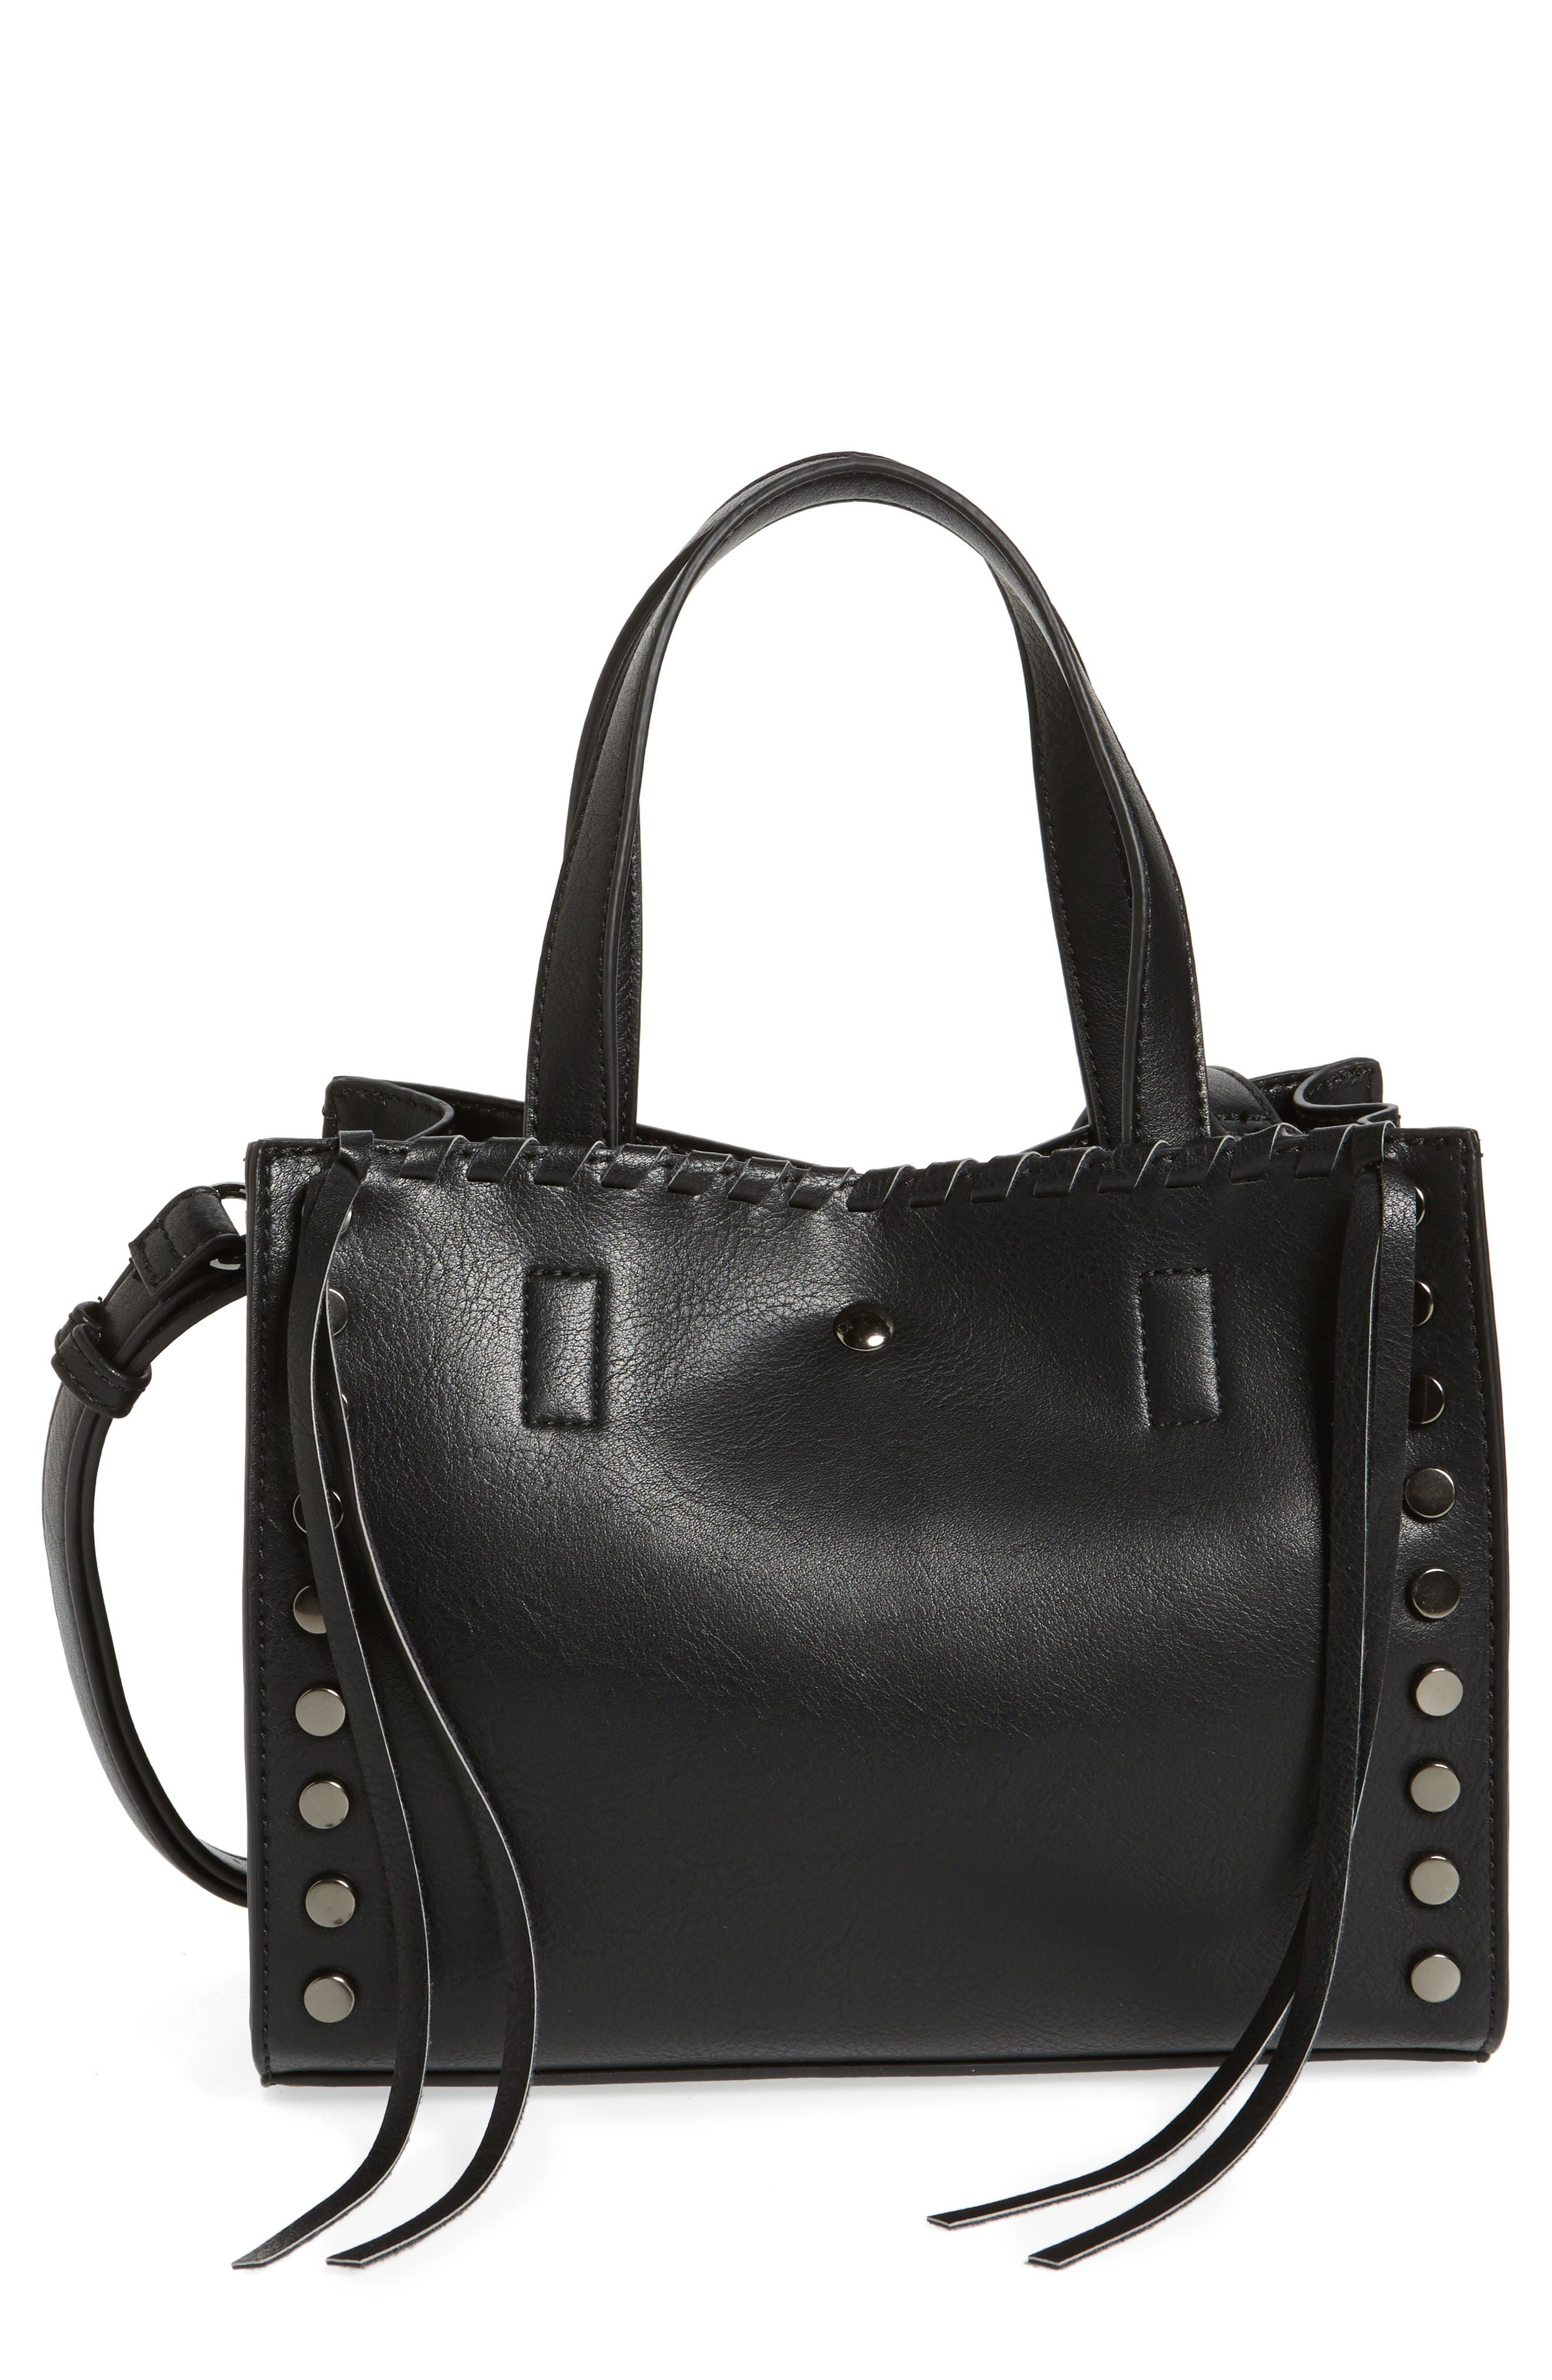 Alternate Image 1 Selected - BP. Studded Faux Leather Crossbody Bag